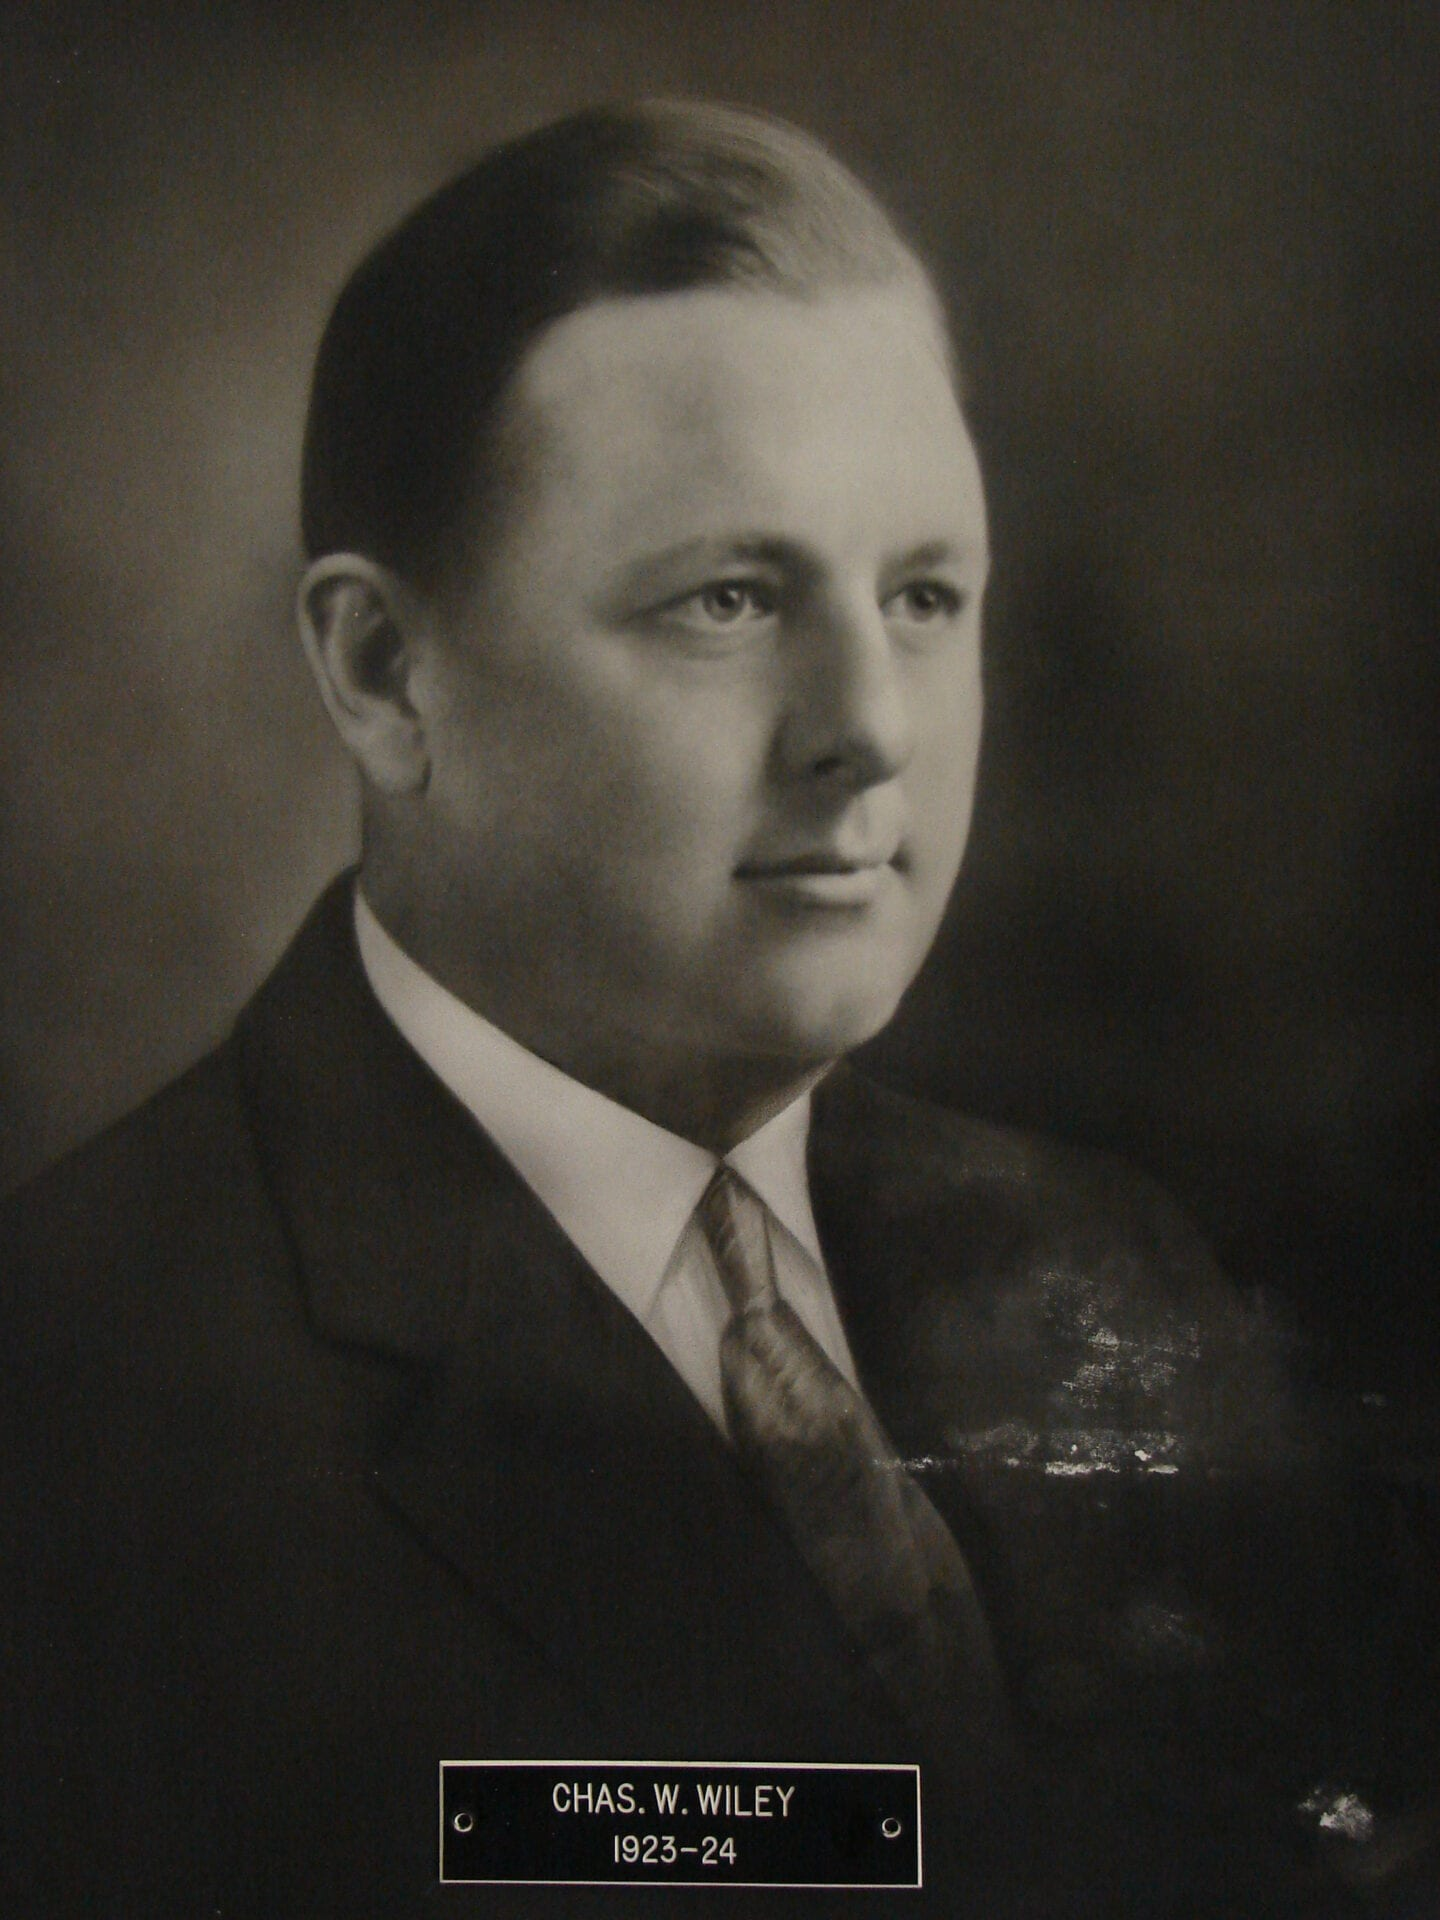 Charles W Wiley